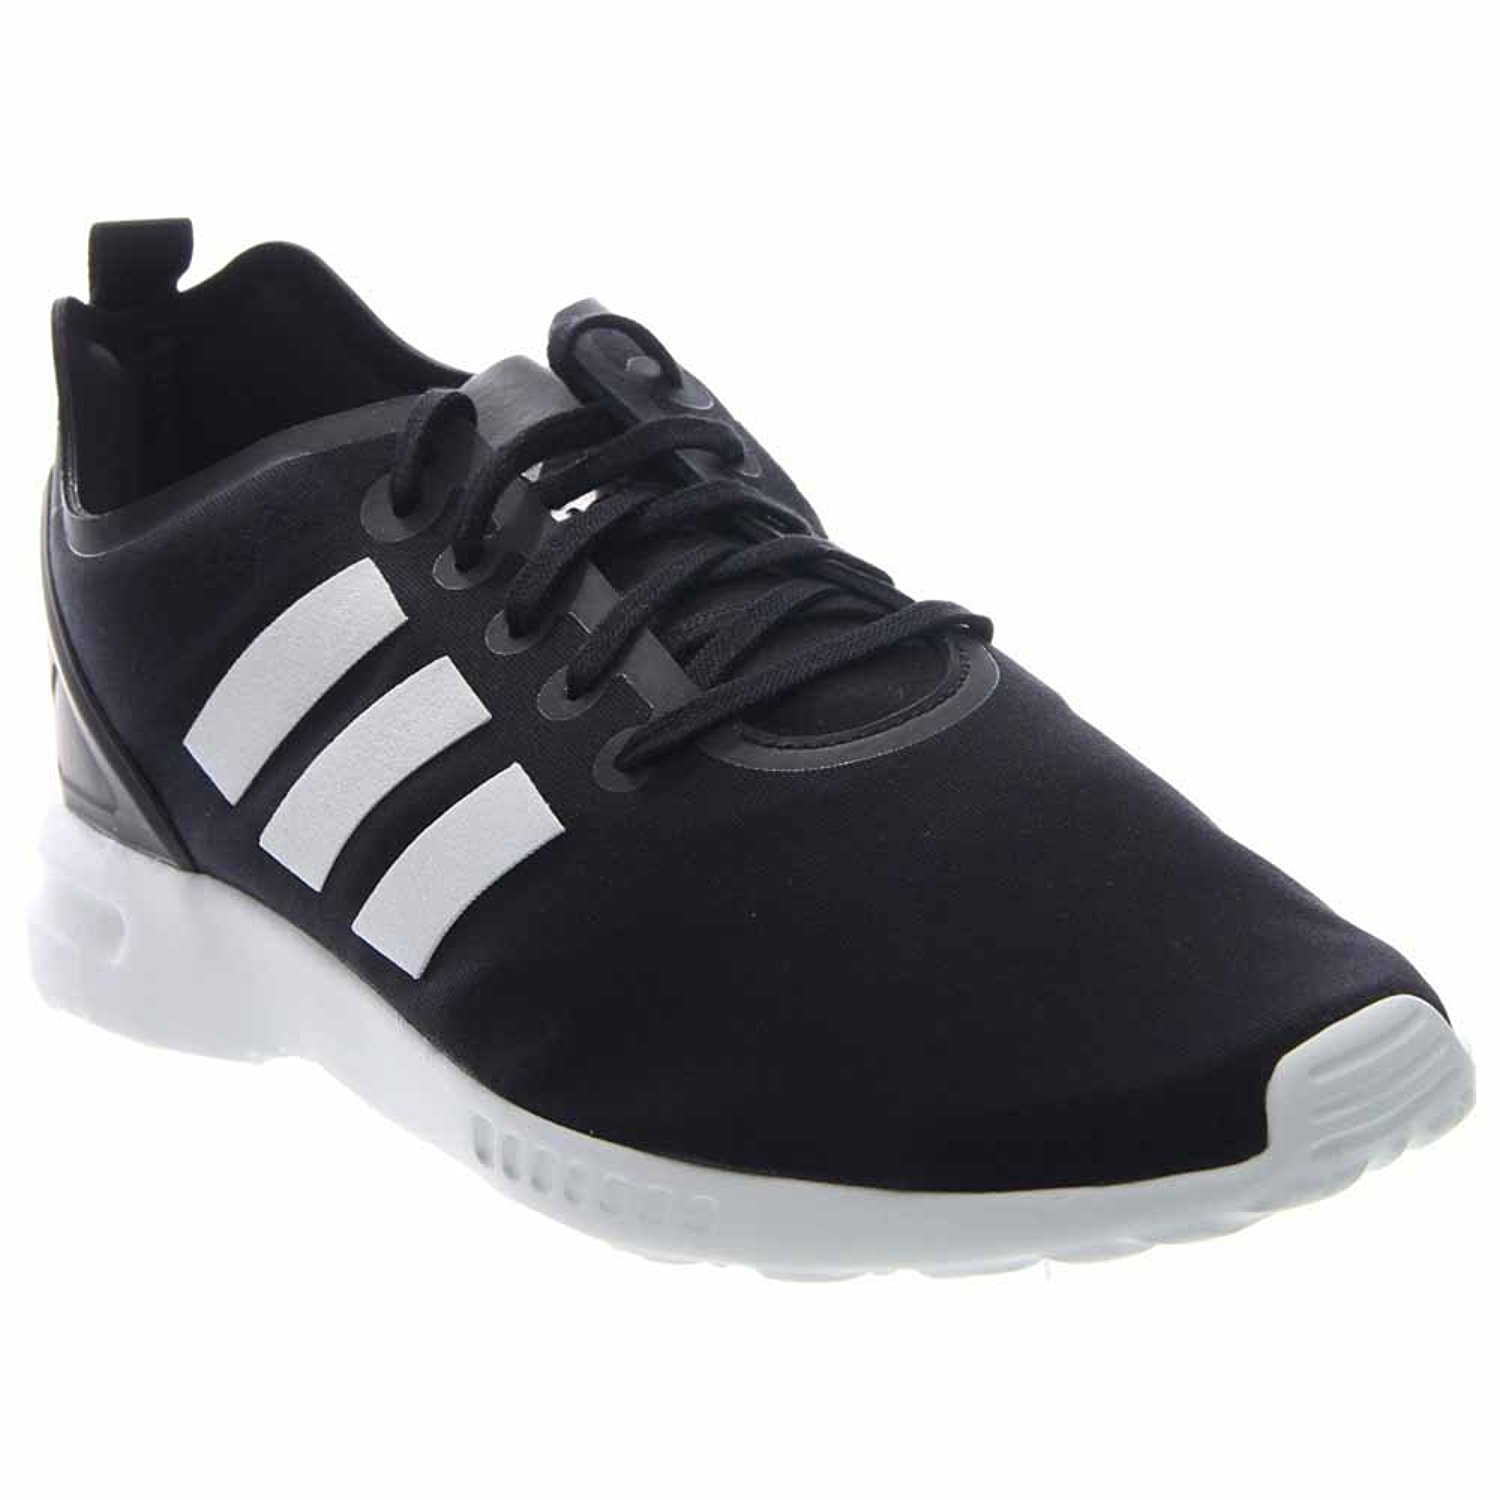 pretty nice 70b58 381f8 Buy adidas Zx Flux Smooth Womens Shoes in Cheap Price on ...